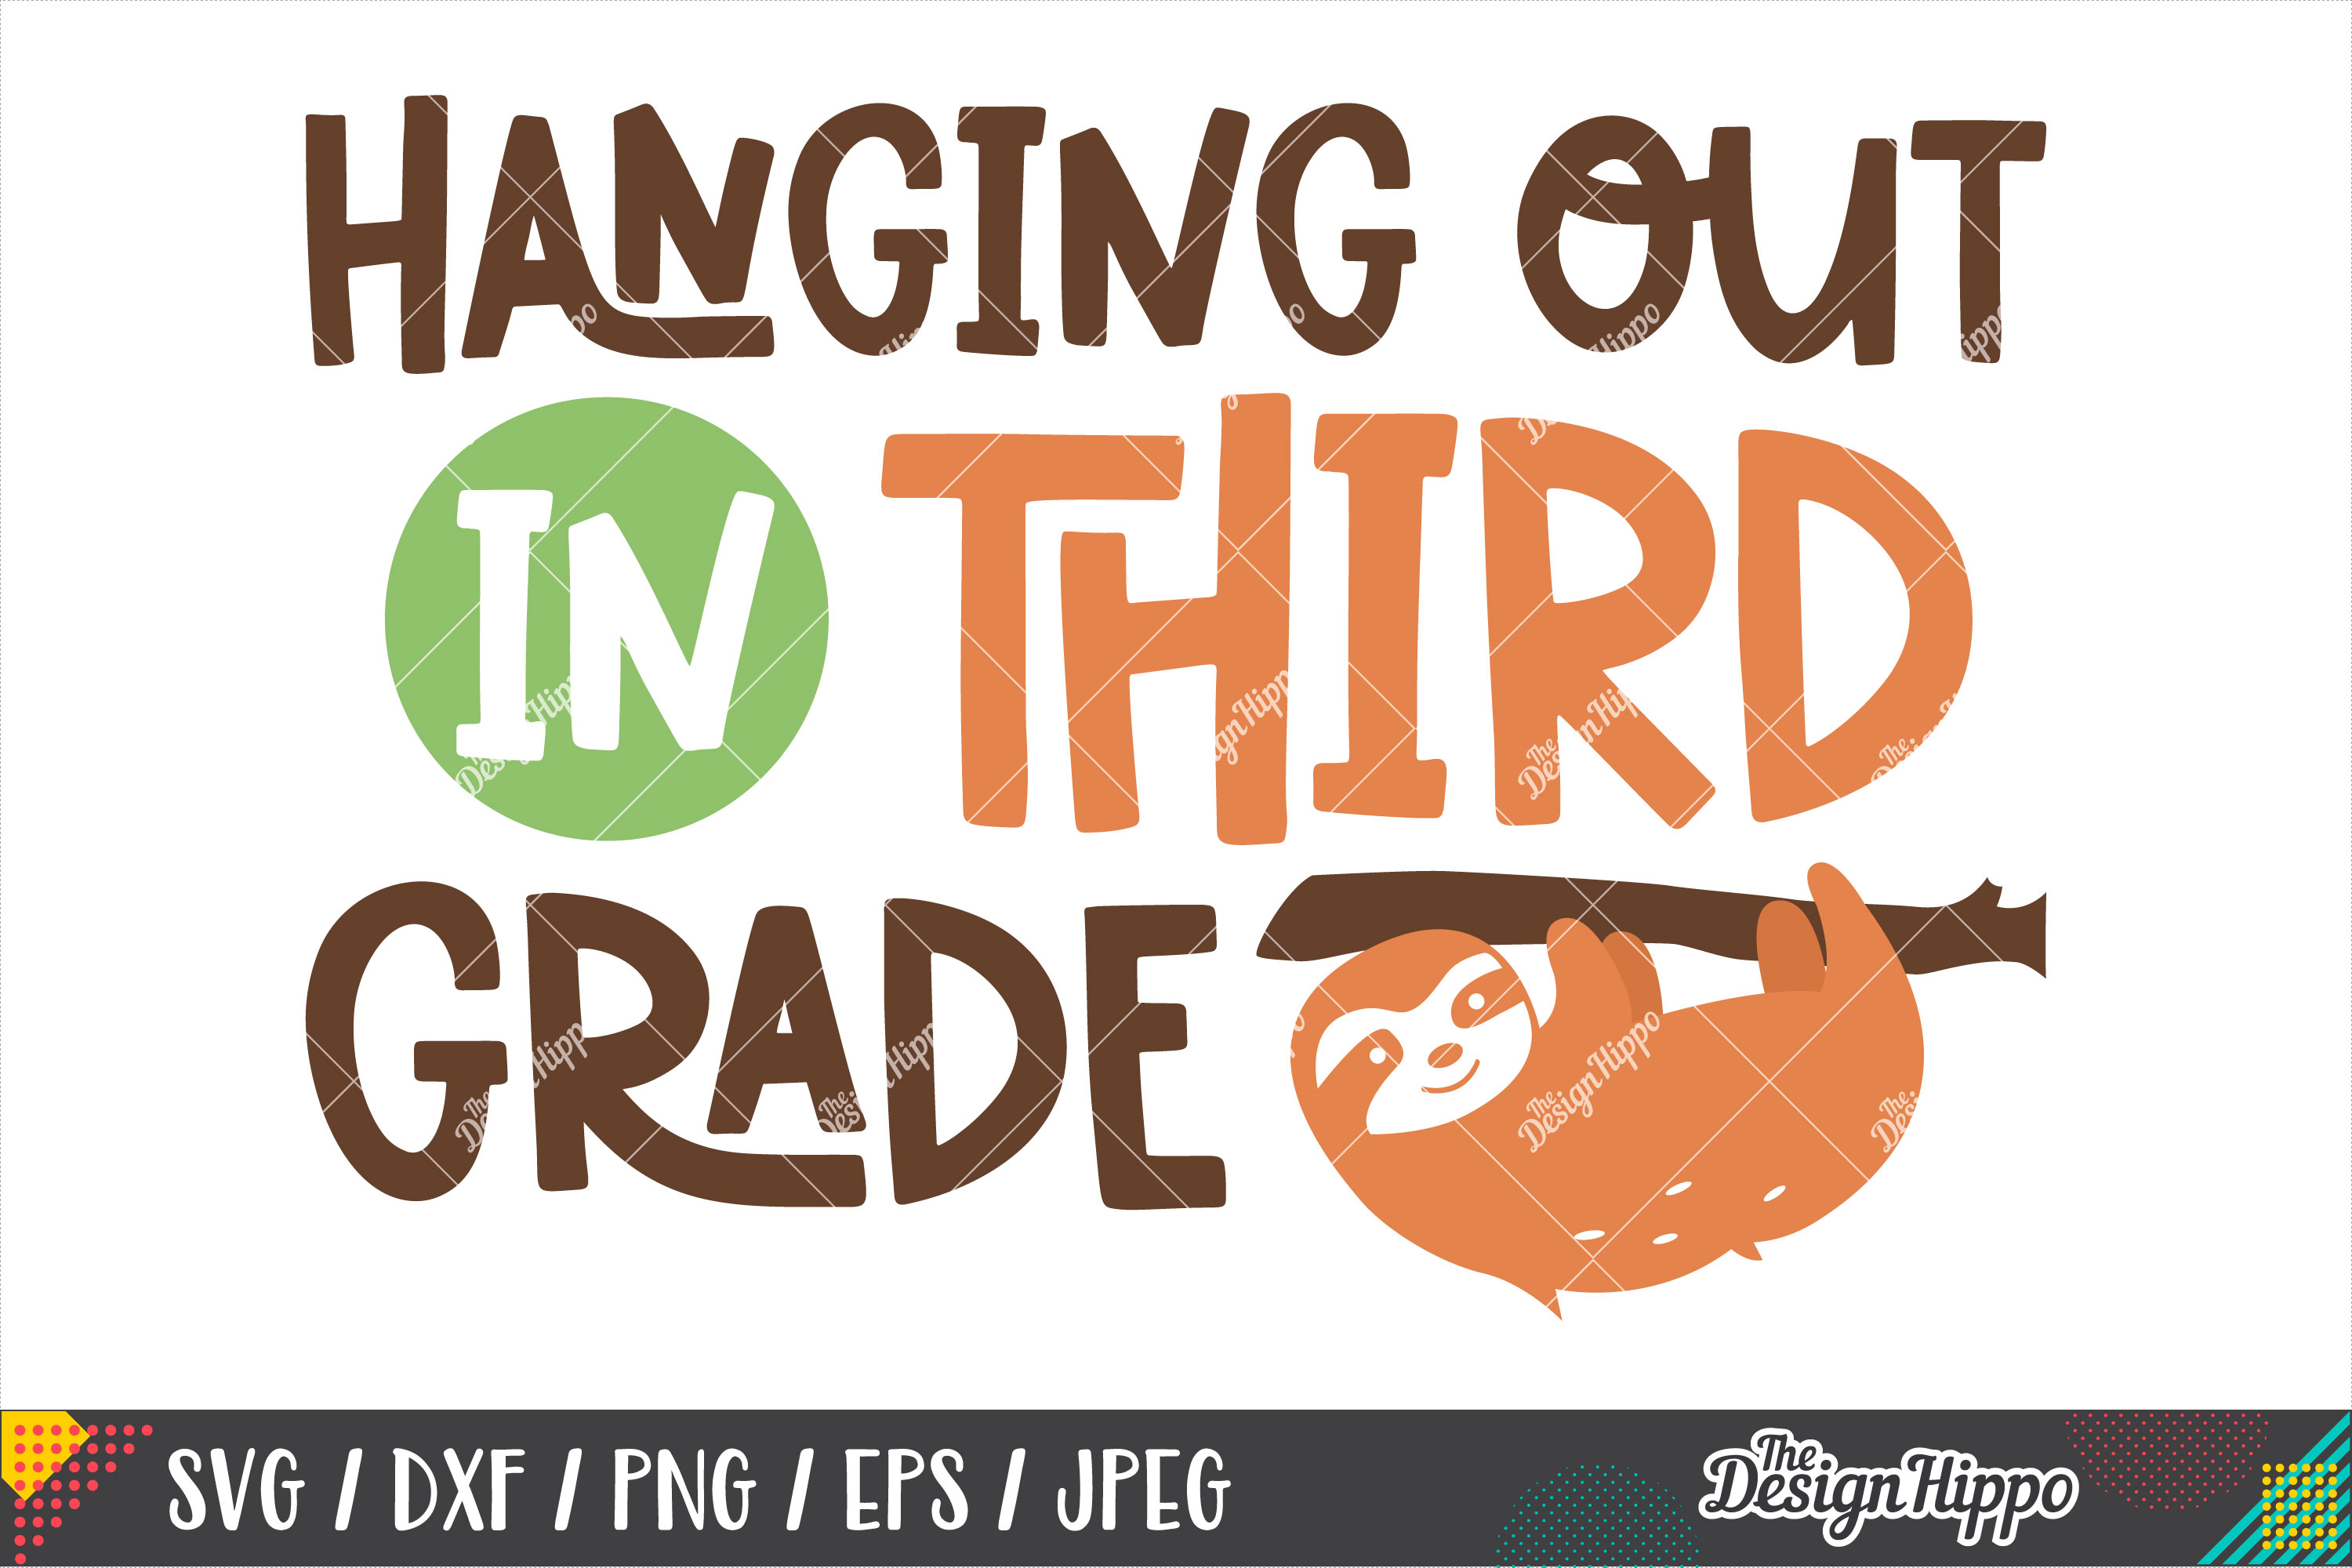 Hanging Out In Third Grade, 3rd Grade Teacher SVG DXF PNG example image 2